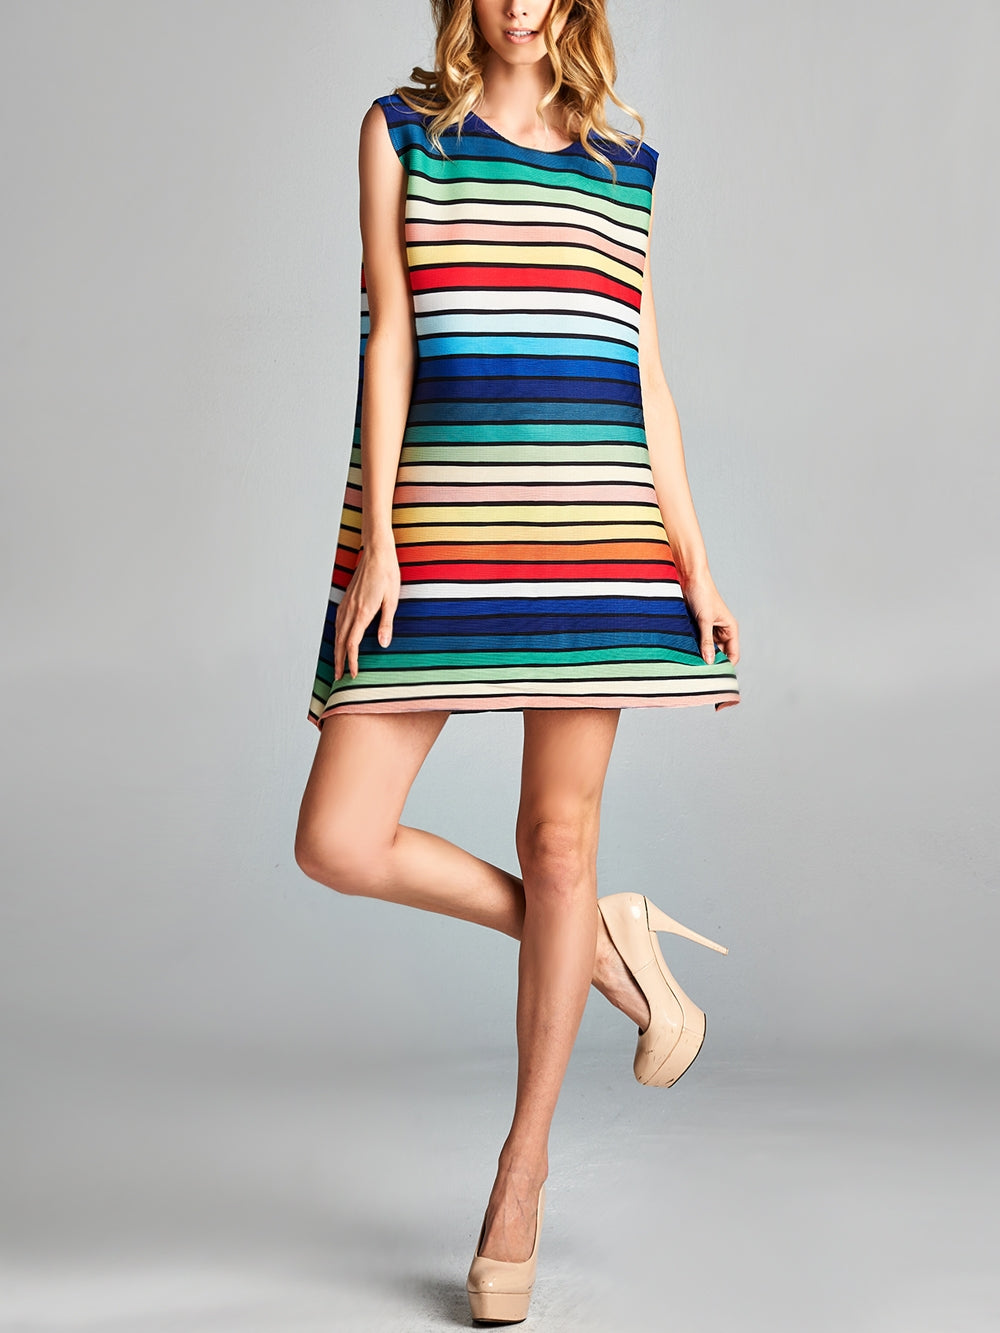 Pleated  Striped  Sleeveless Multi Color Dress 87186